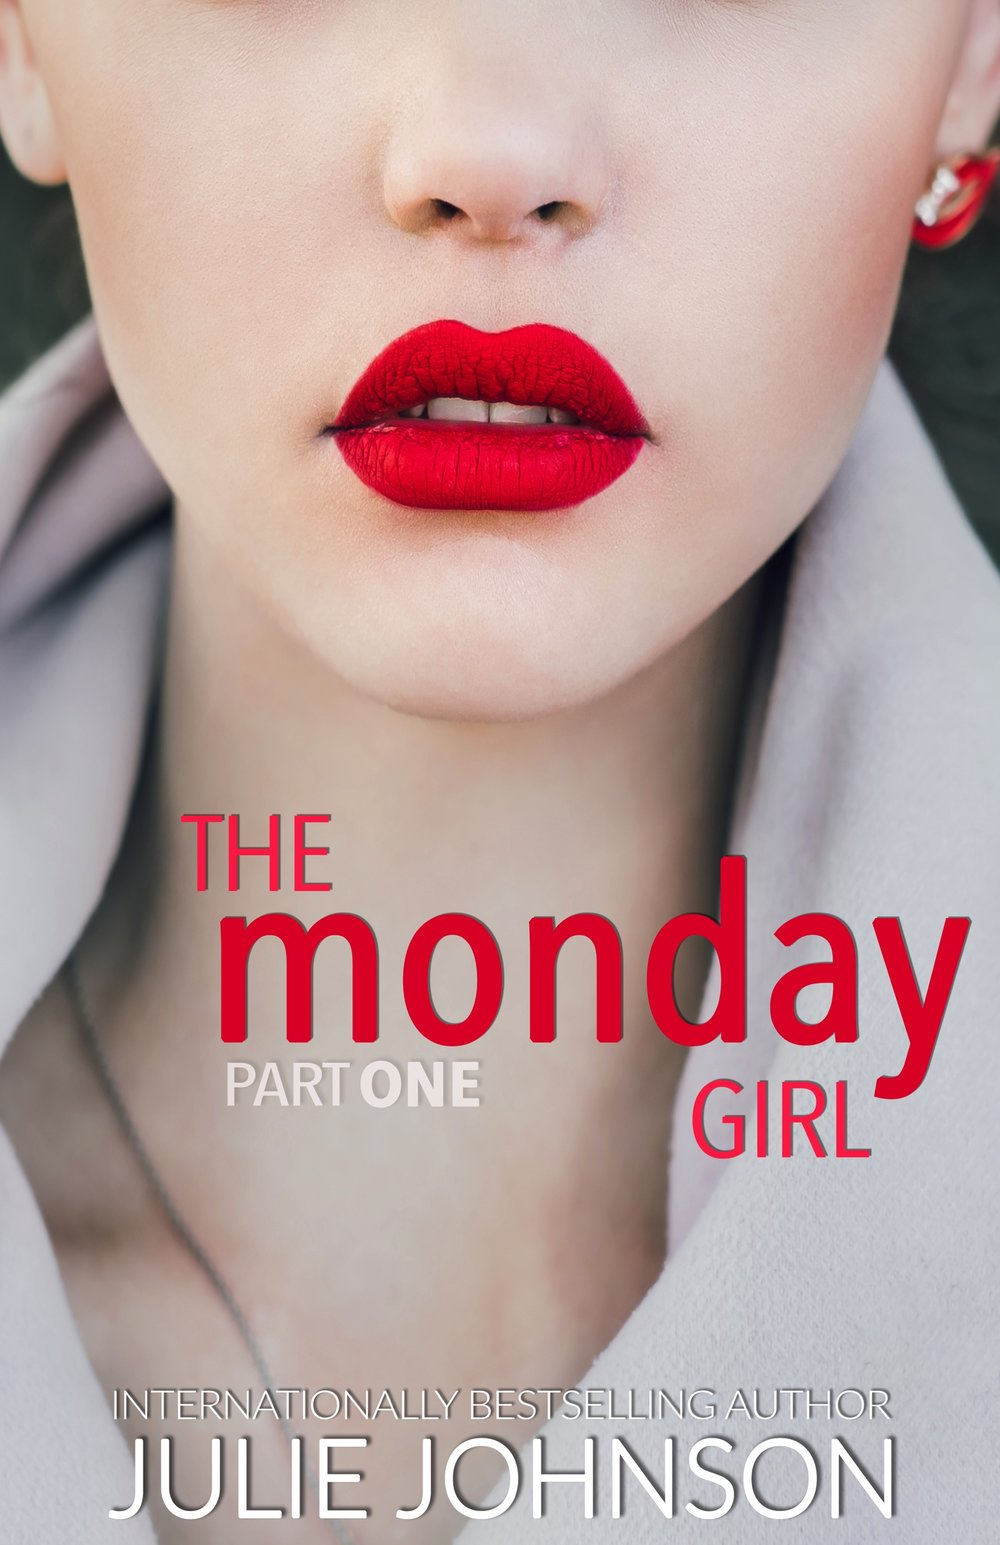 THE-MONDAY-GIRL-Kindle.jpg